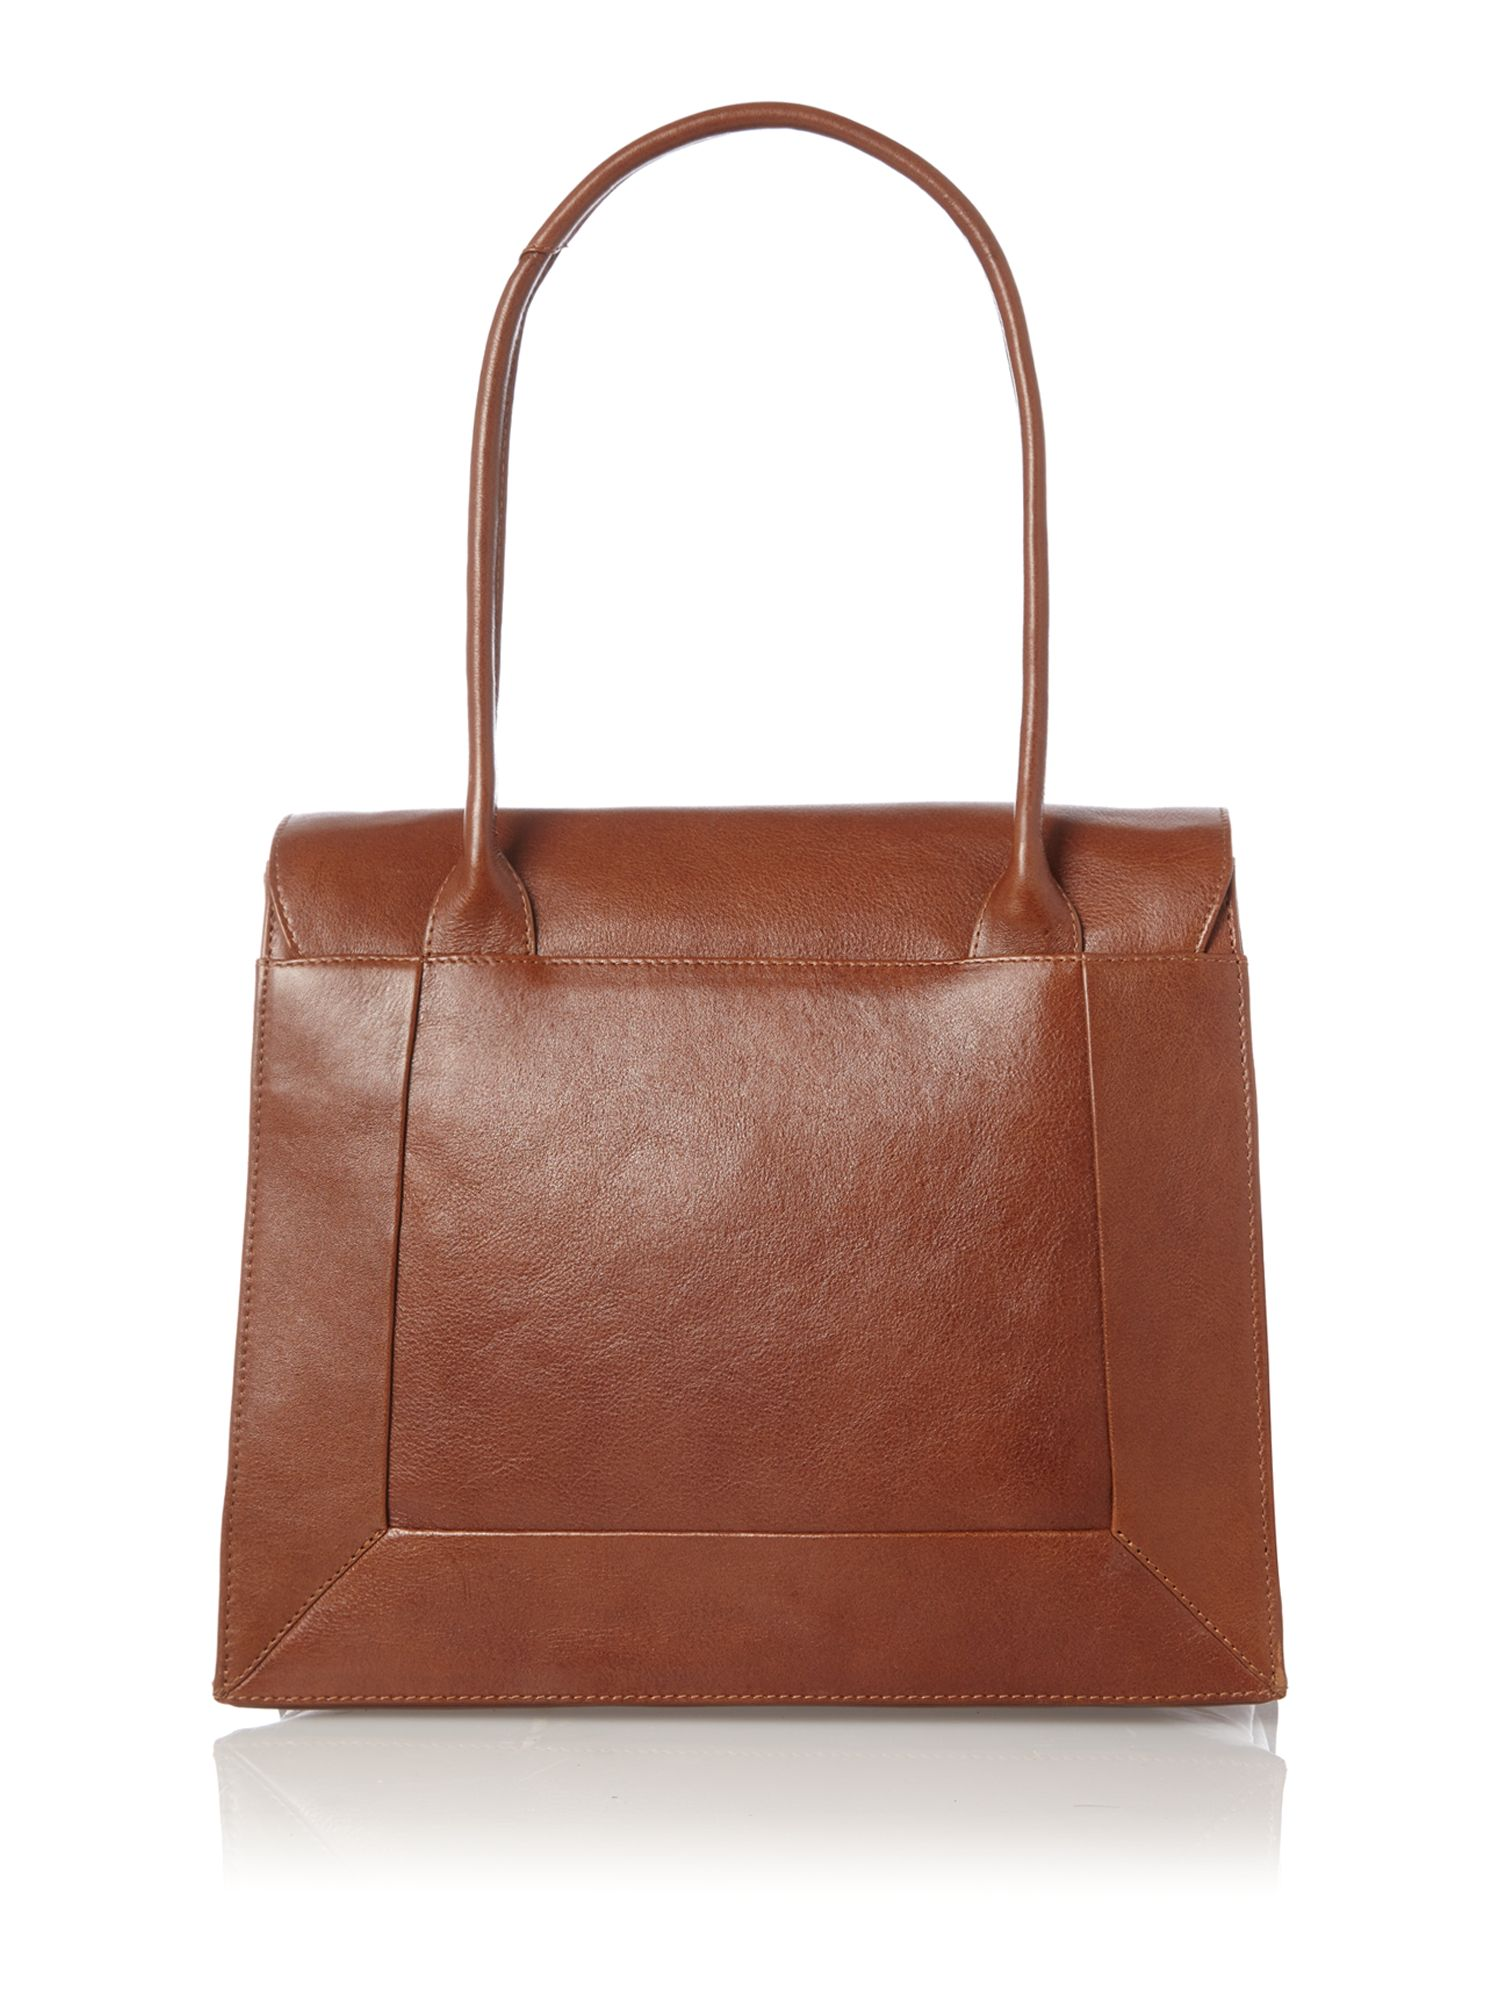 Border tan leather large flapover tote bag